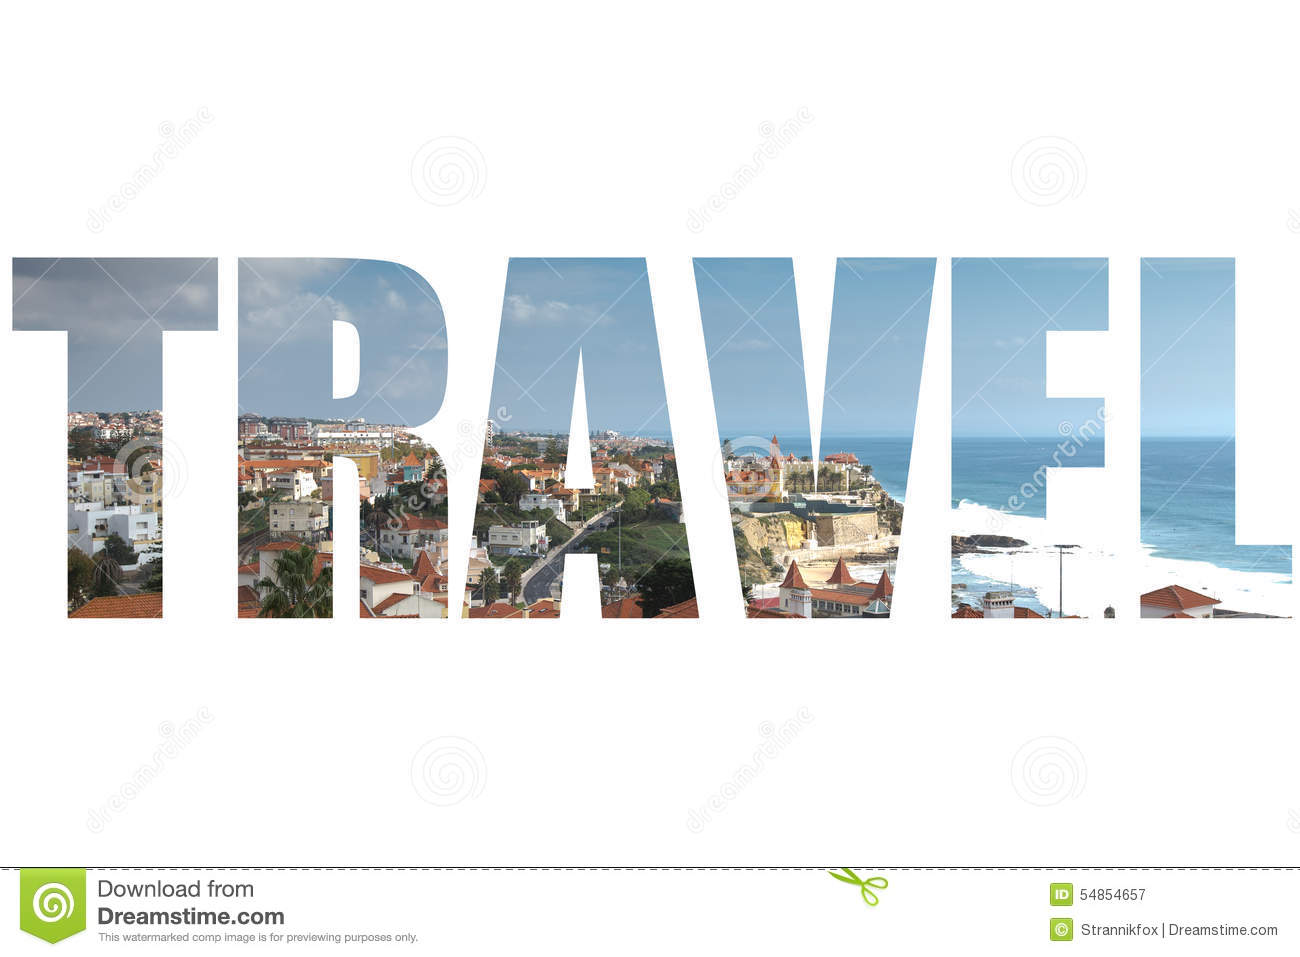 word-travel-over-view-mountain-over-rooftops-m-modern-landscape-portugal-54854657.jpg